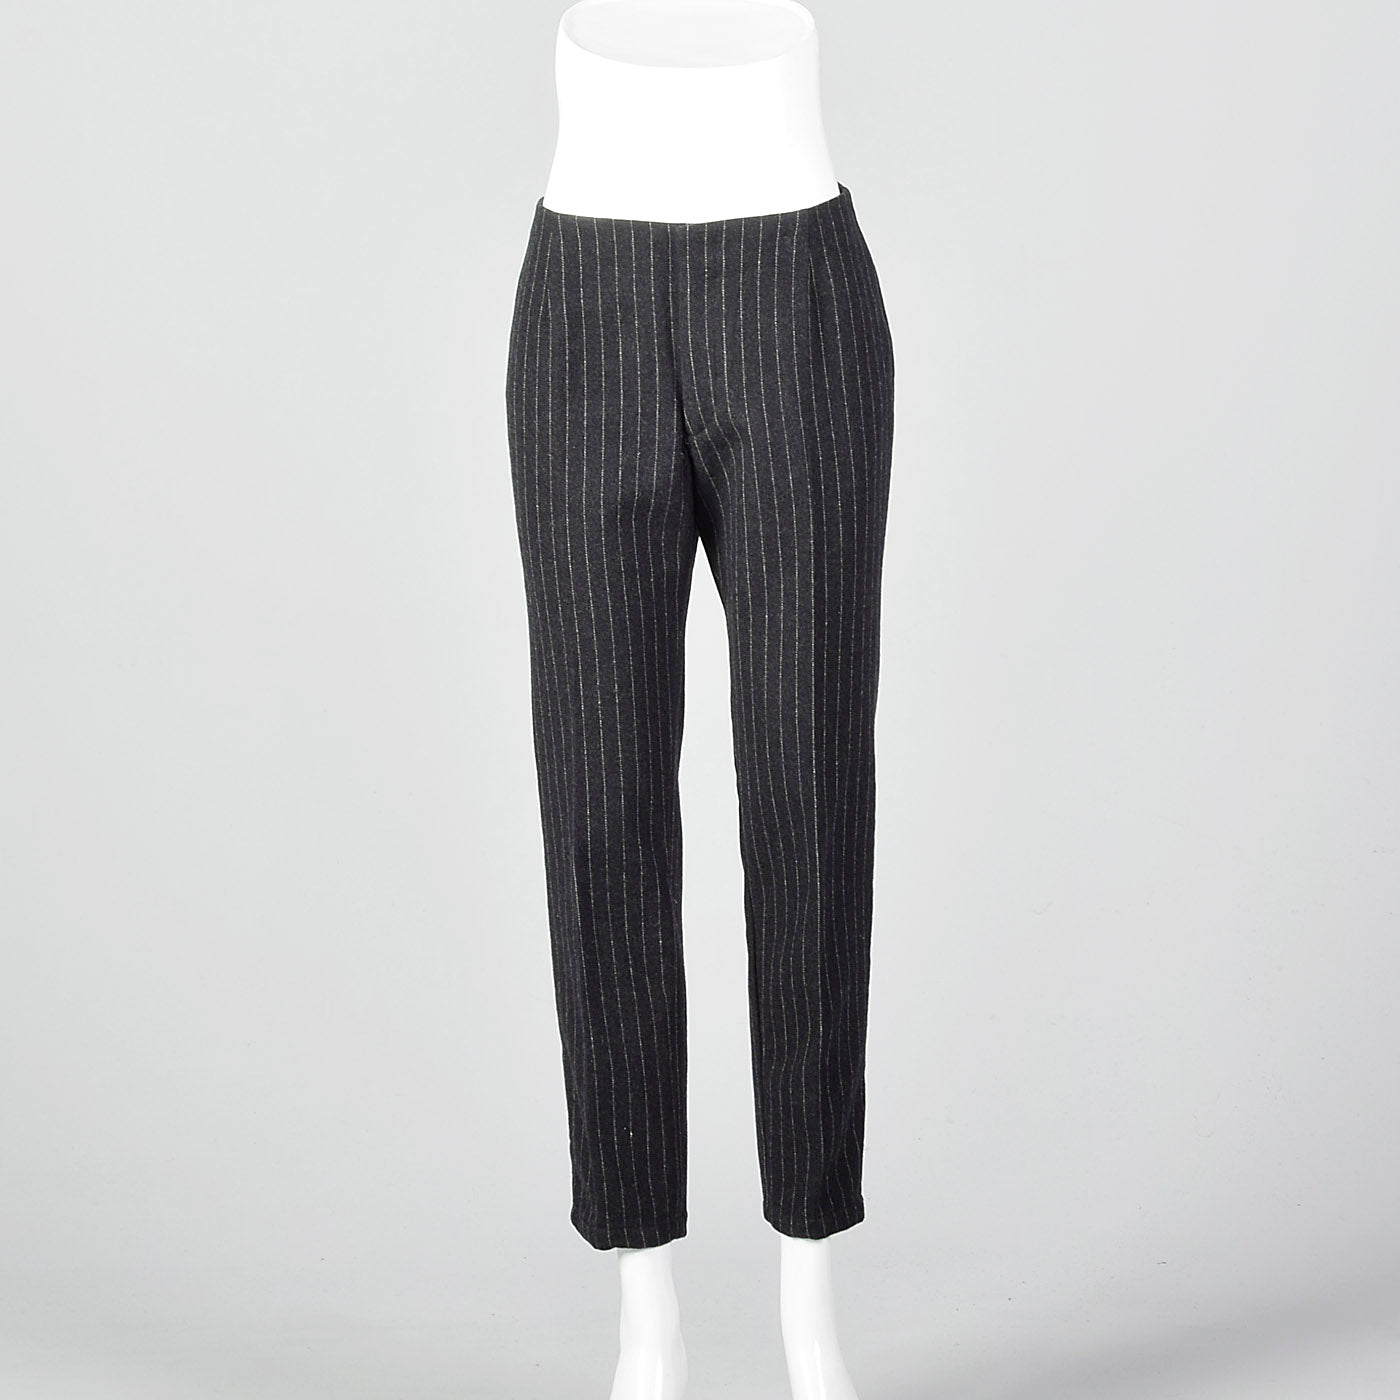 1960s Gray Wool Cigarette Pants with White Pinstripe